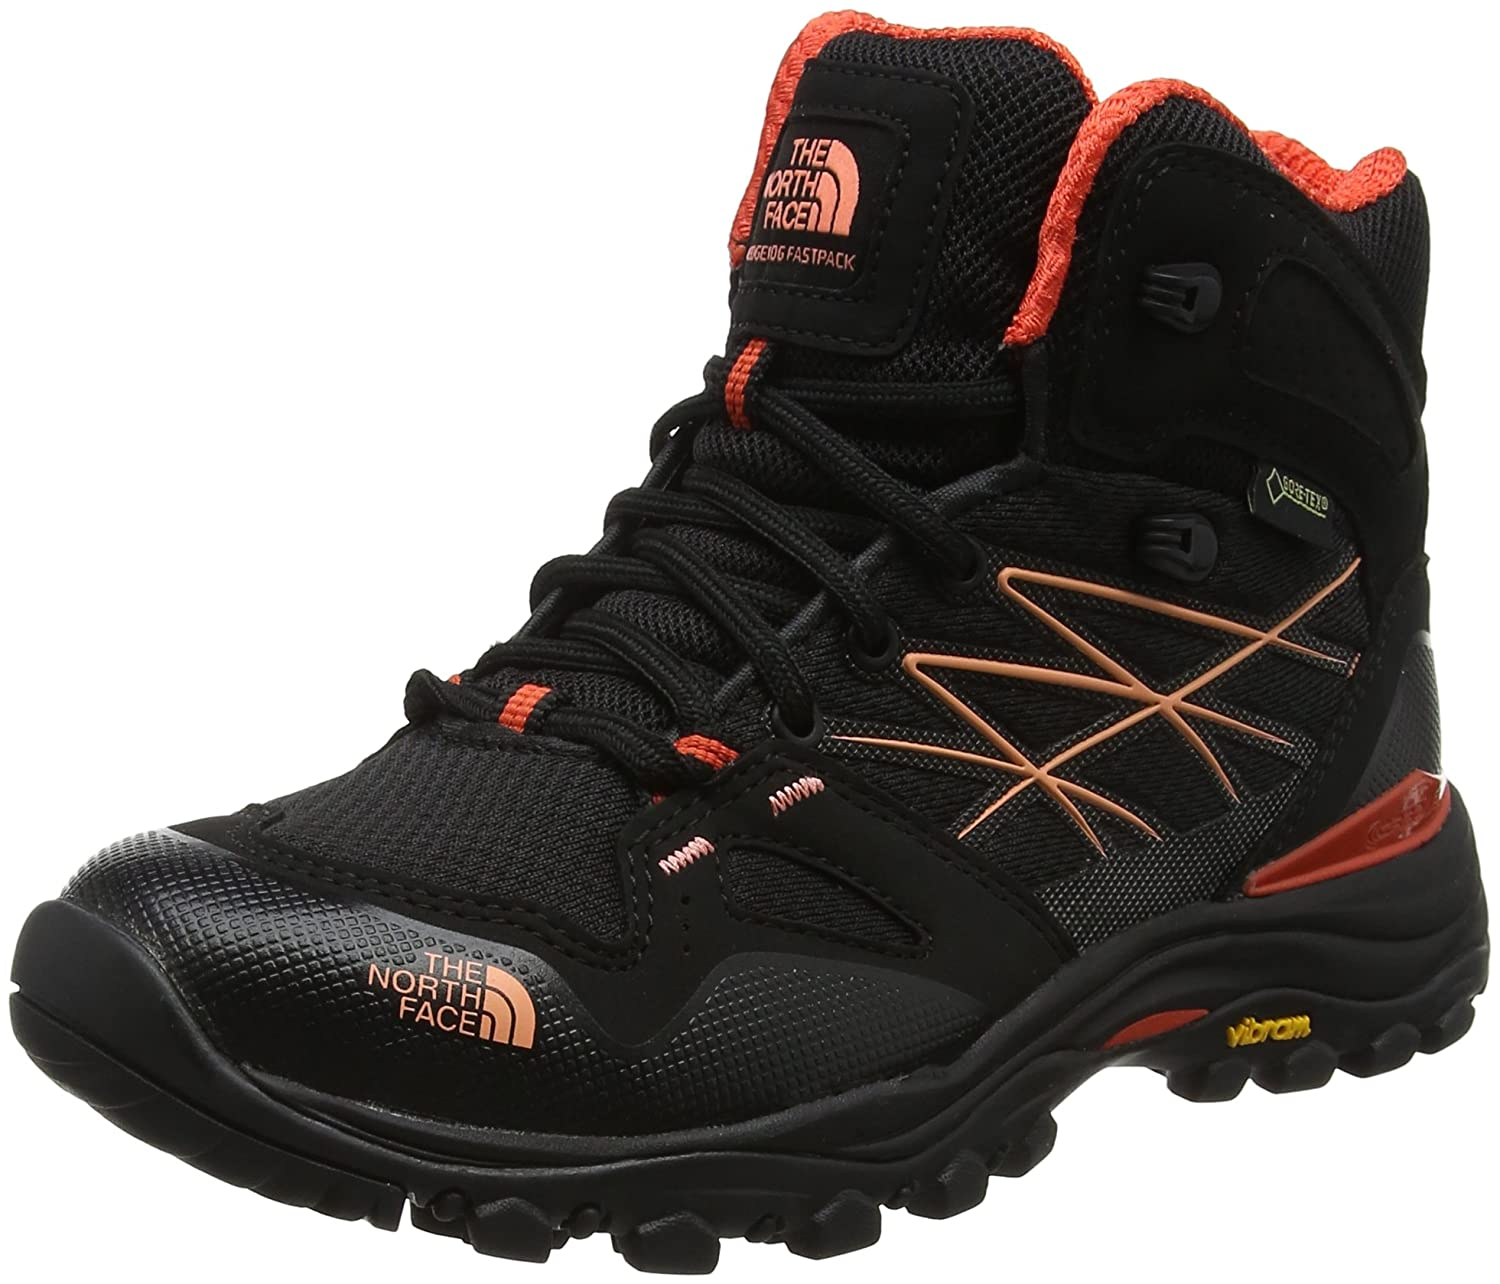 Noir (Tnf noir Fire Brick rouge) 36.5 EU The North Face Hedgehog Fastpack, Chaussures de Randonnée Basses Femme